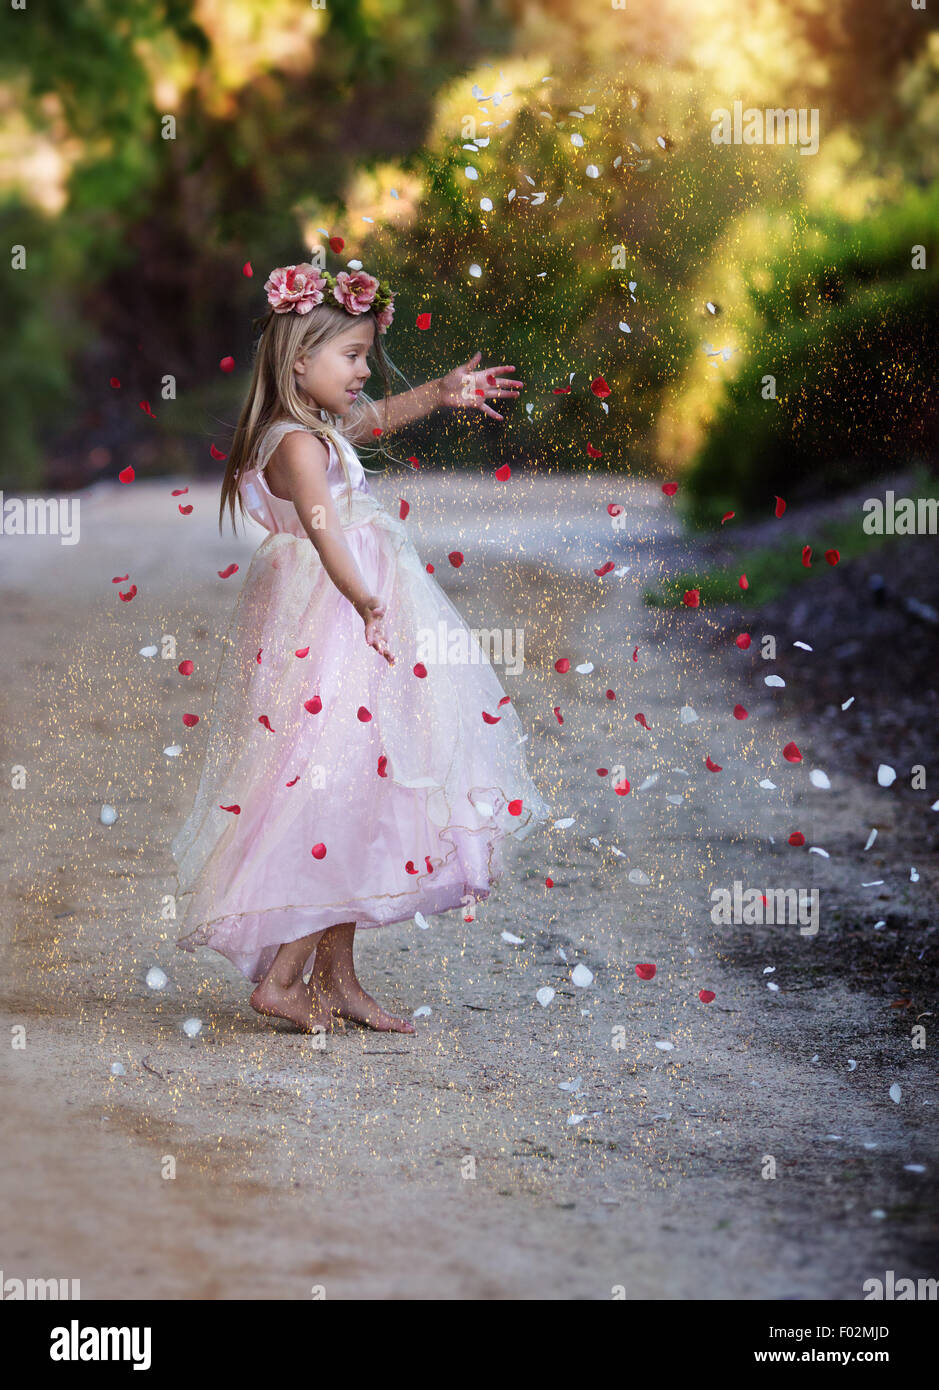 girl dancing on a dirt road surrounded by glitter and rose petals - Stock Image